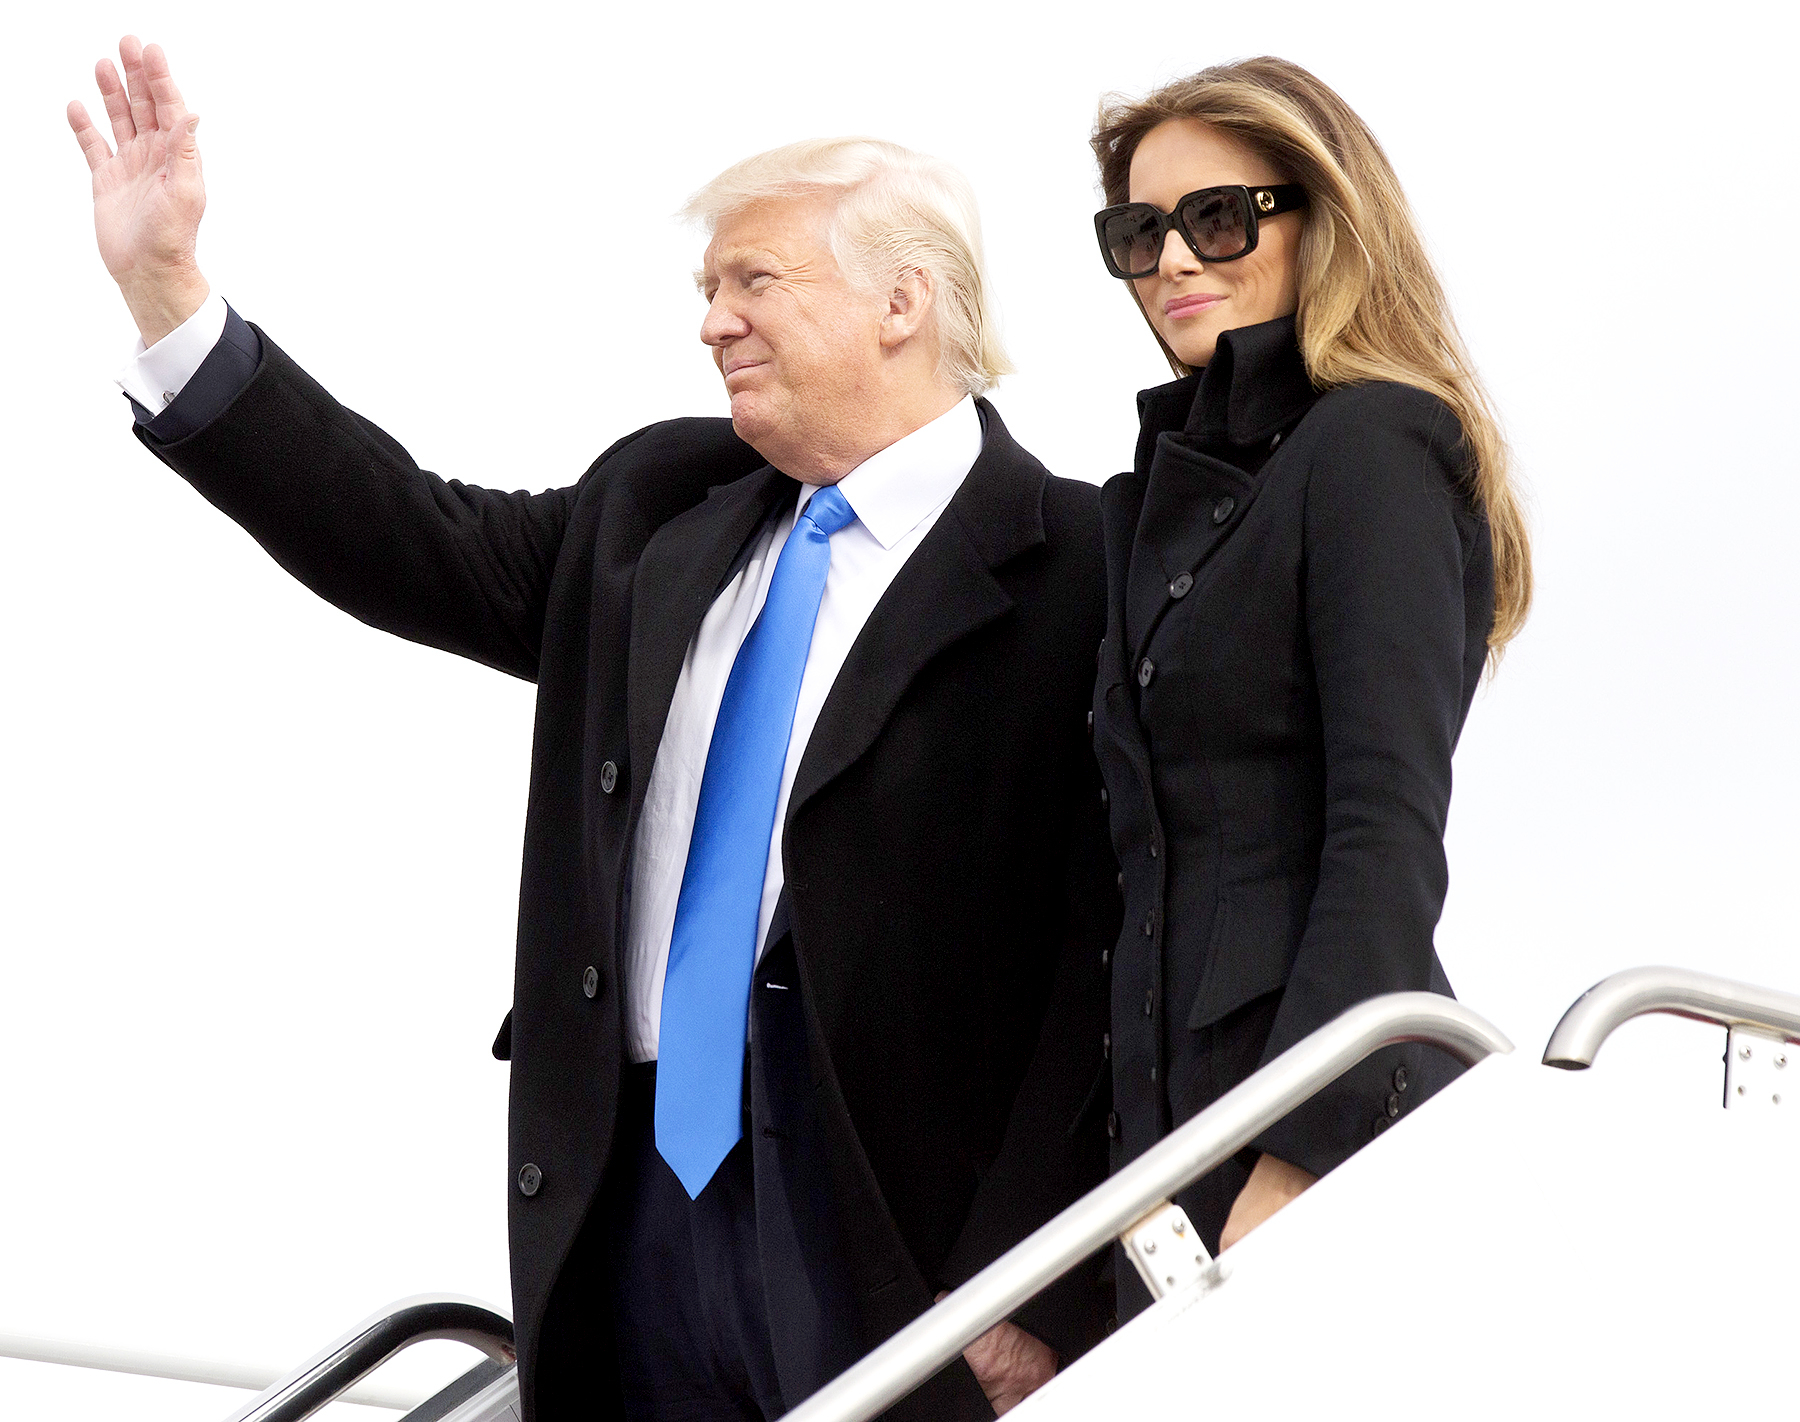 U.S. President-elect Donald Trump and his wife Melania arrive at Joint Base Andrews outside Washington, D.C., U.S., on Thursday, Jan. 19, 2017.